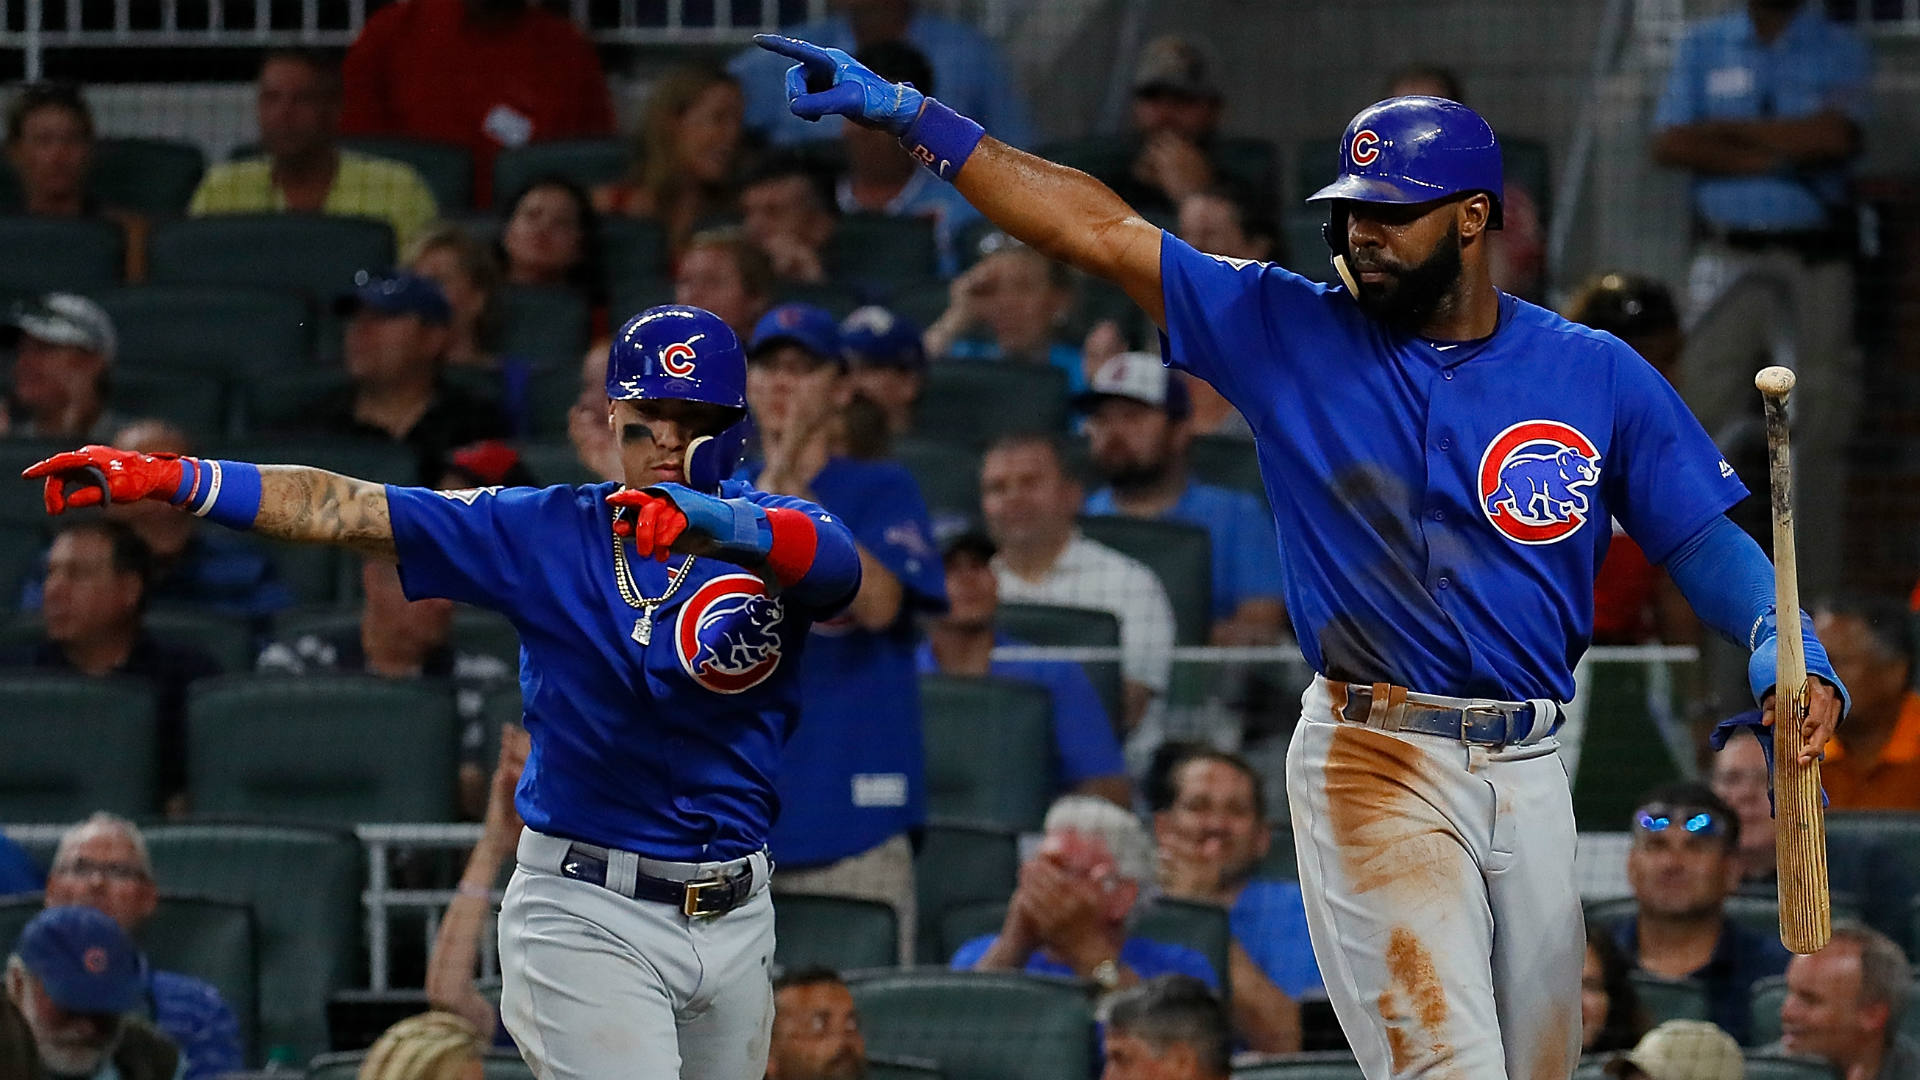 Cubs escape elimination, defeat Dodgers 3-2 in NLCS Game 4